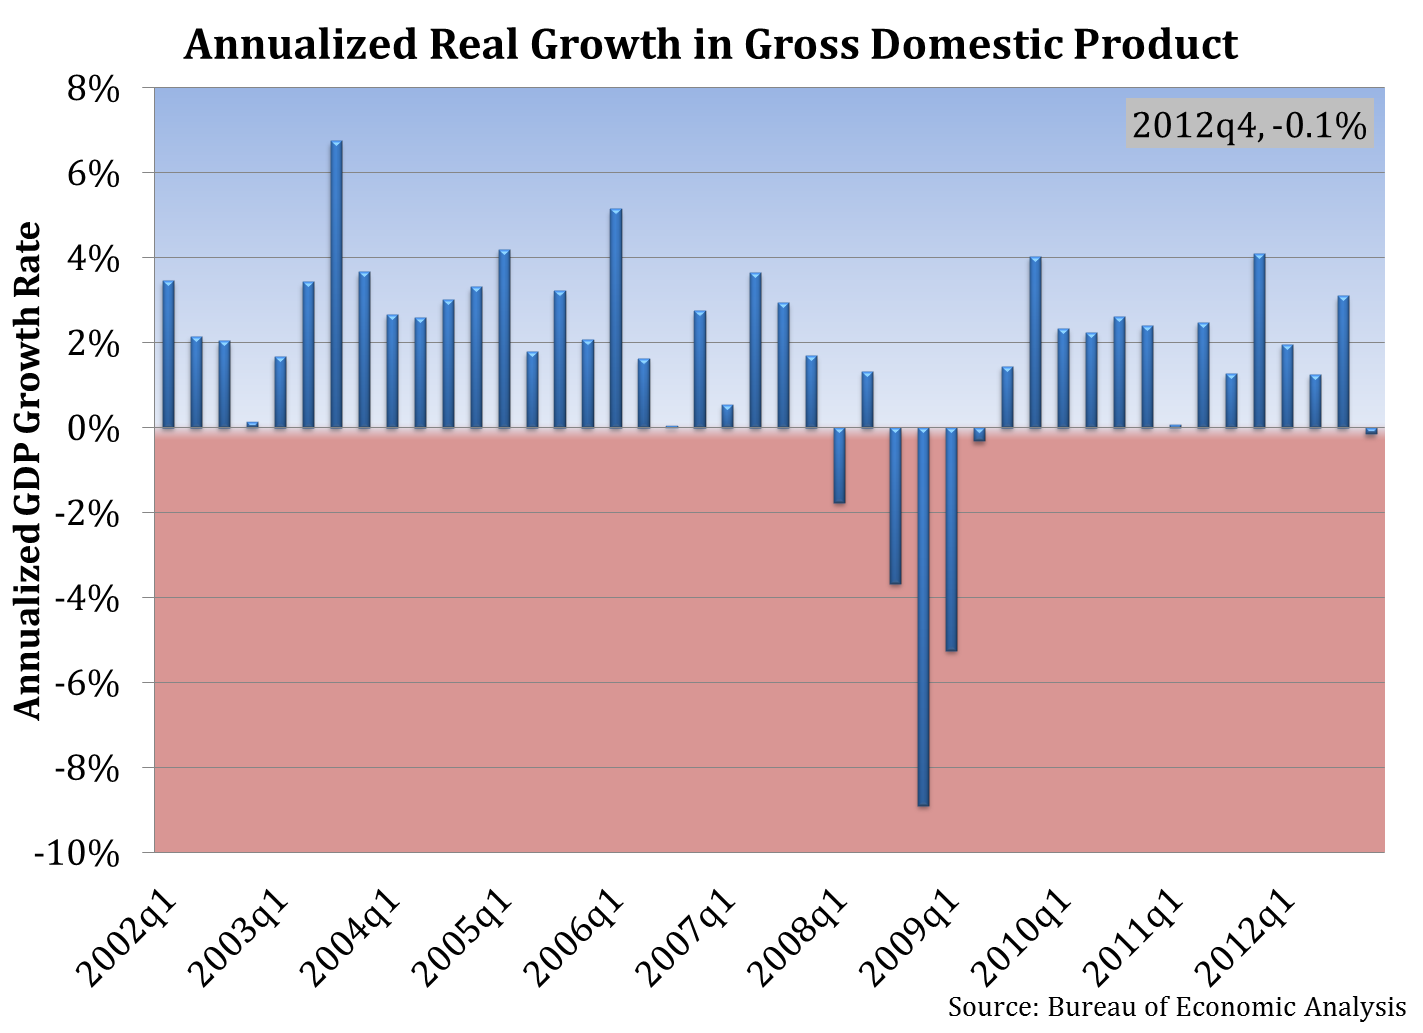 Annualized Real Growth in Gross Domestic Product